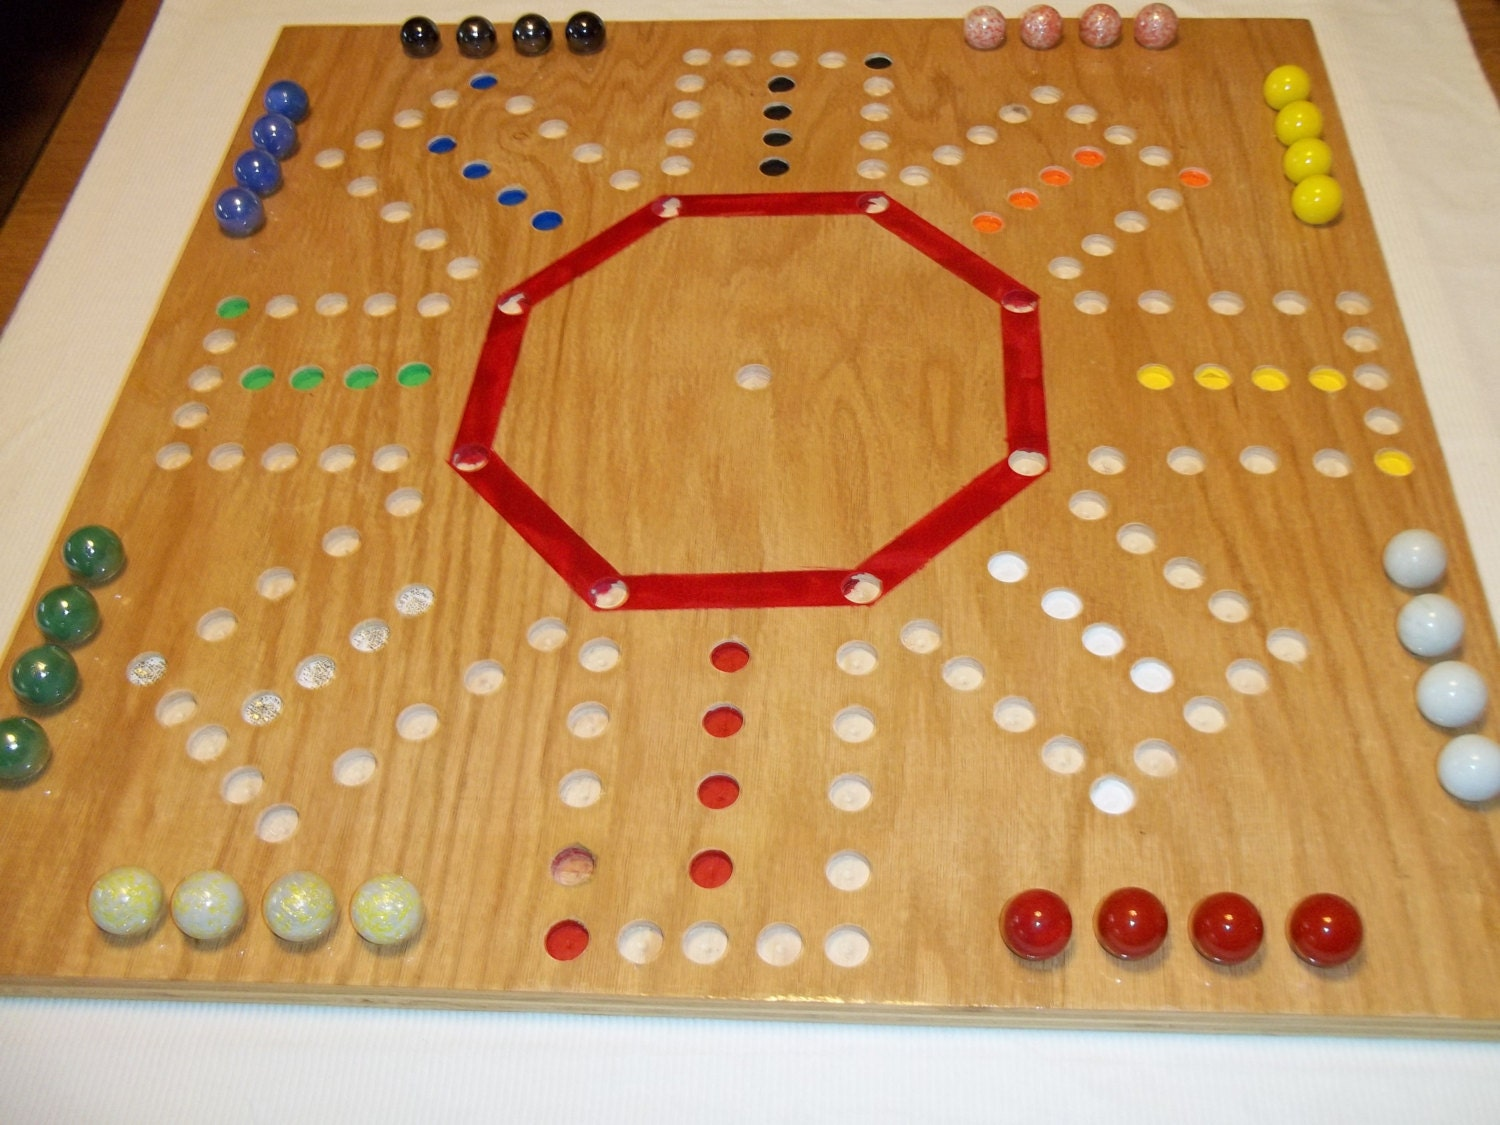 This is a picture of Breathtaking Printable Template for Aggravation Game